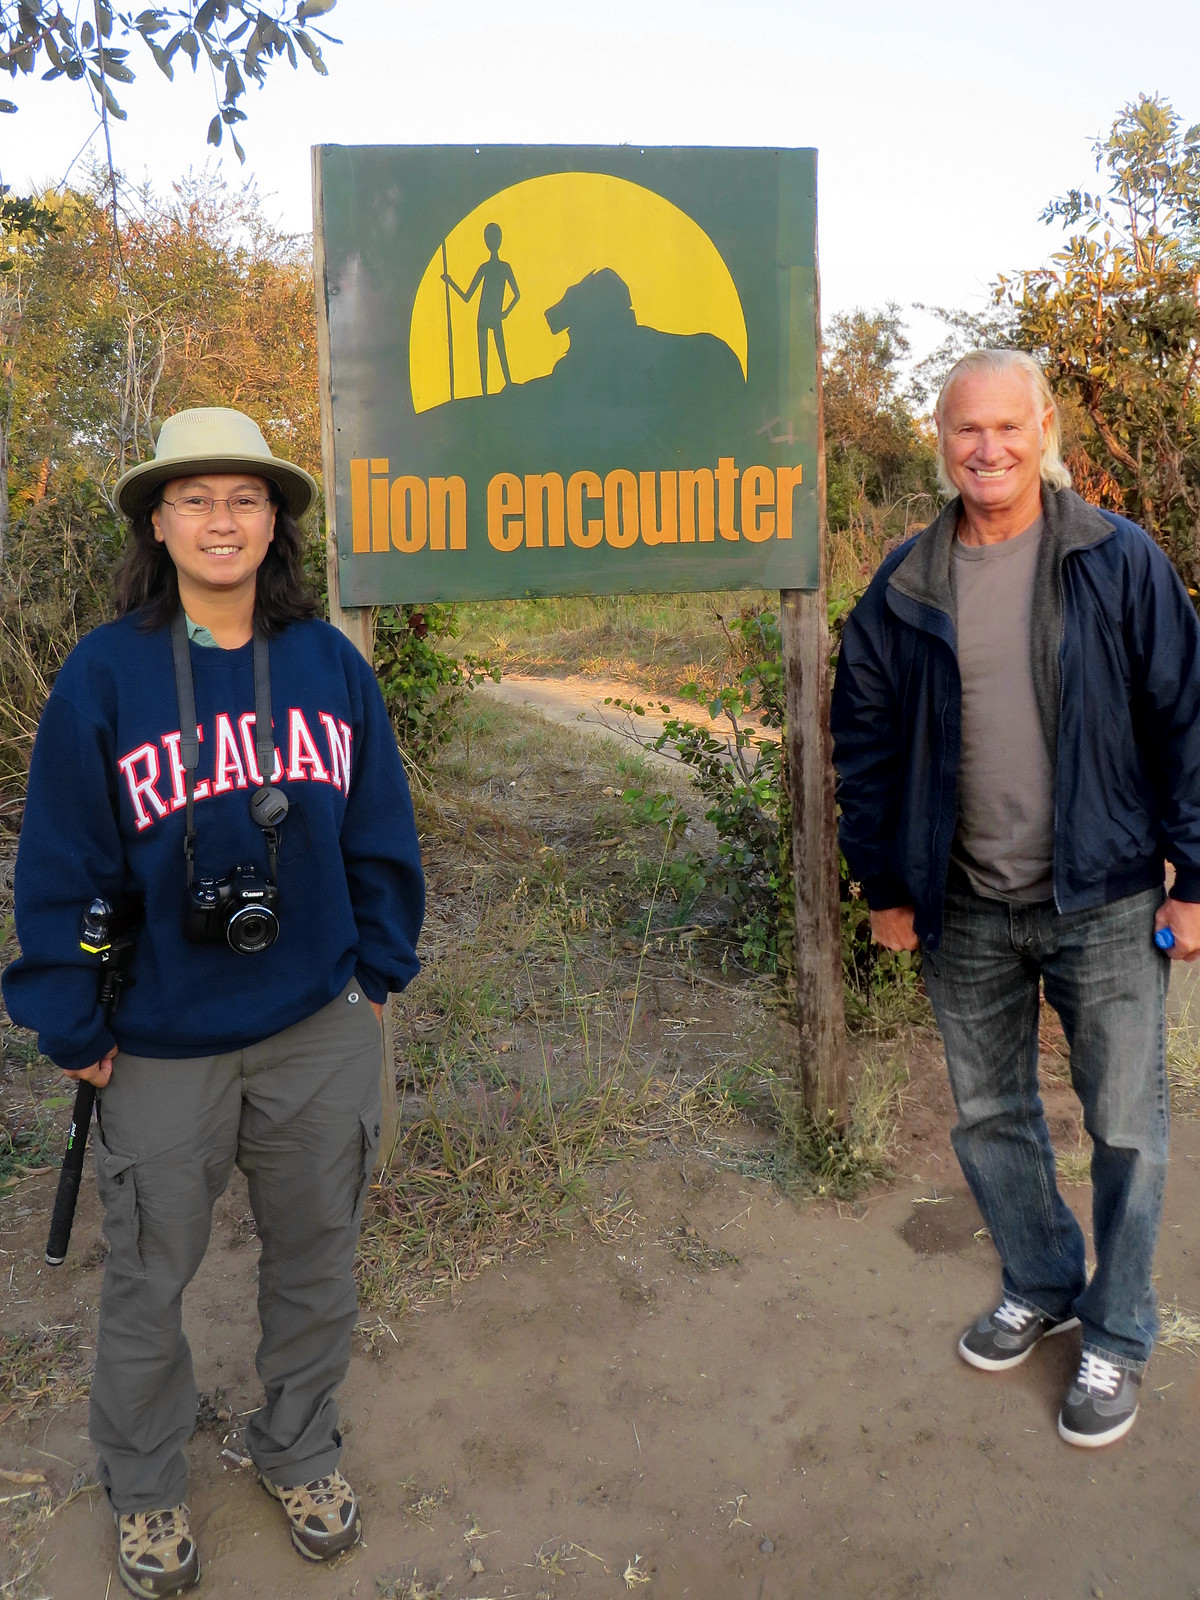 Photo op in front of the Lion Encounter welcome sign